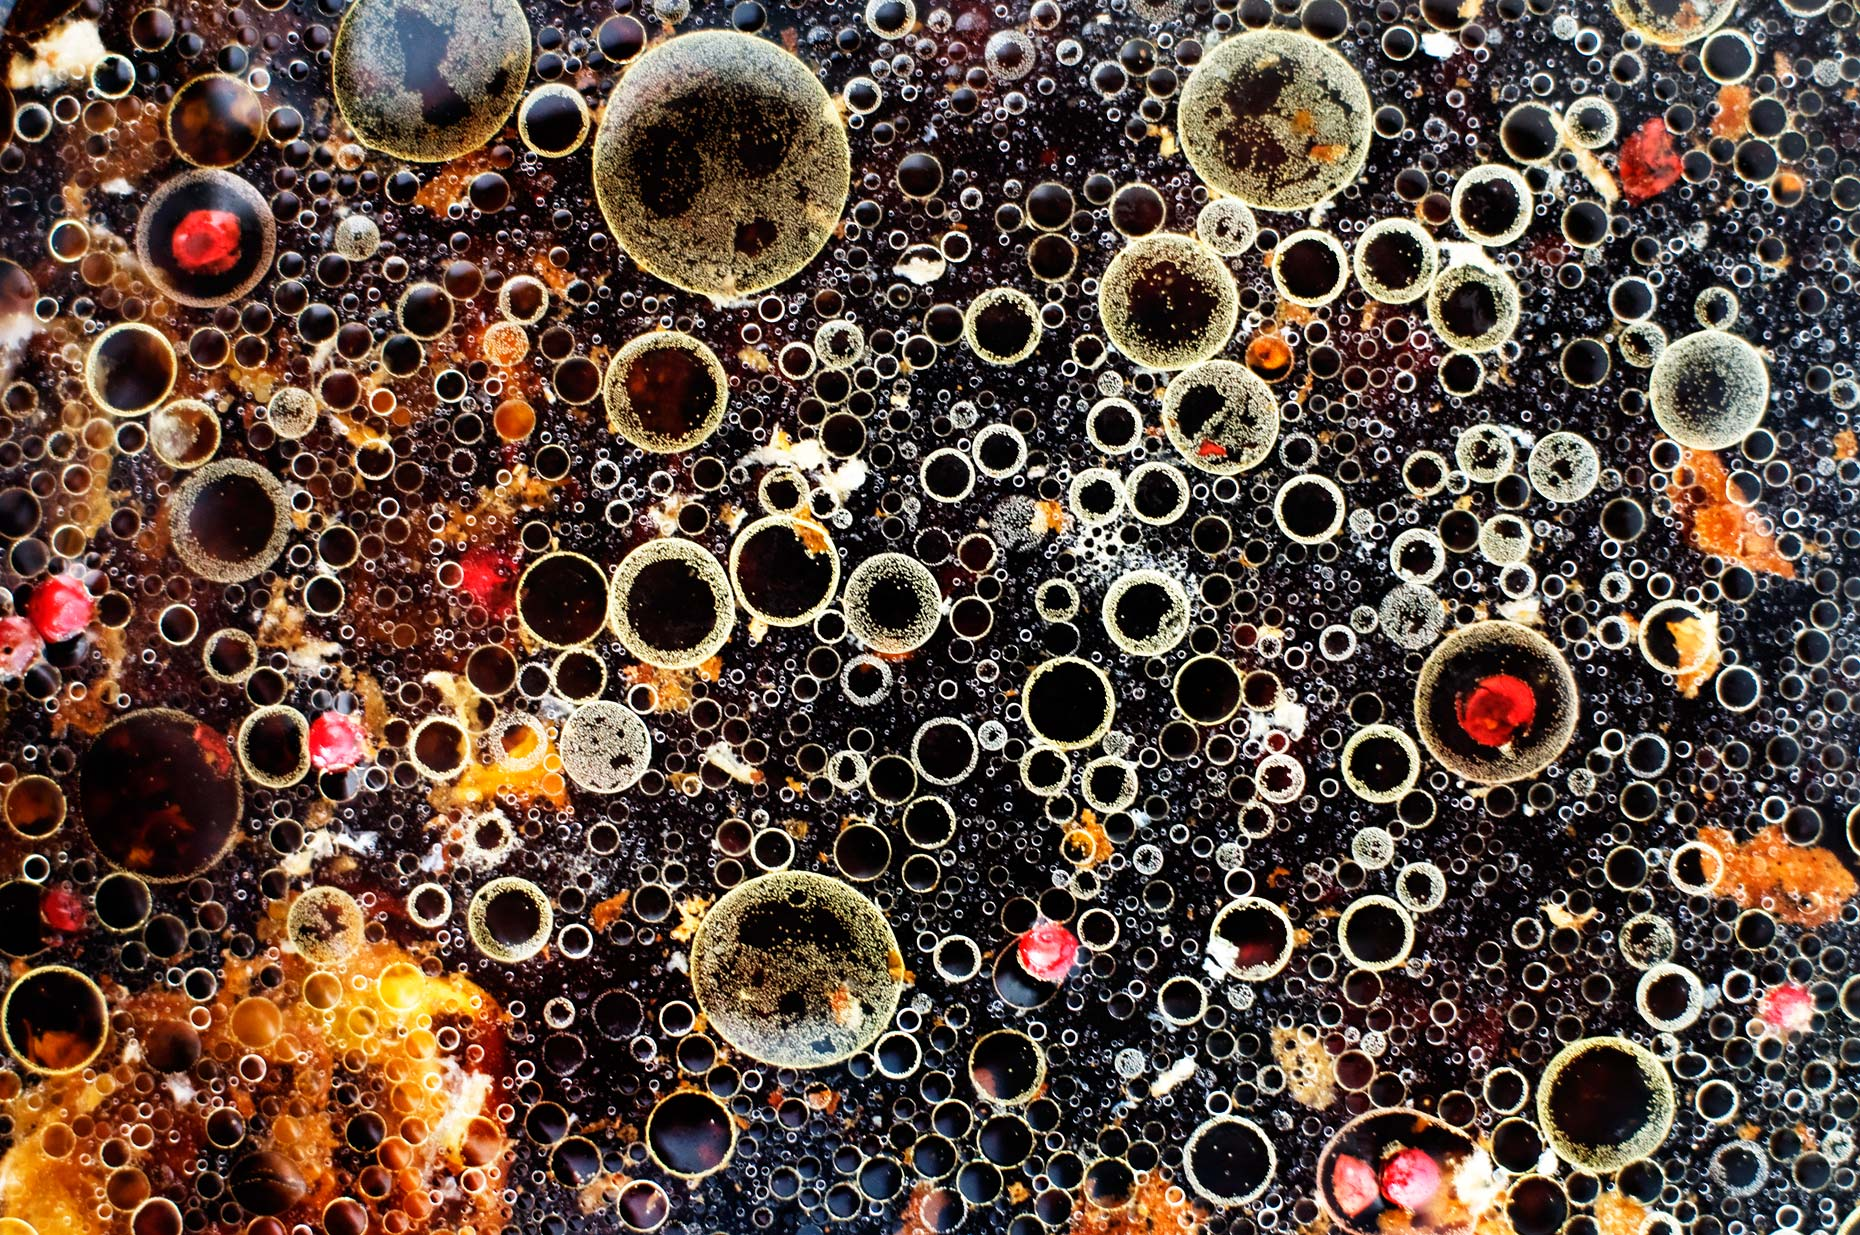 adrian_mueller_liquids_drinks_bubbles_01